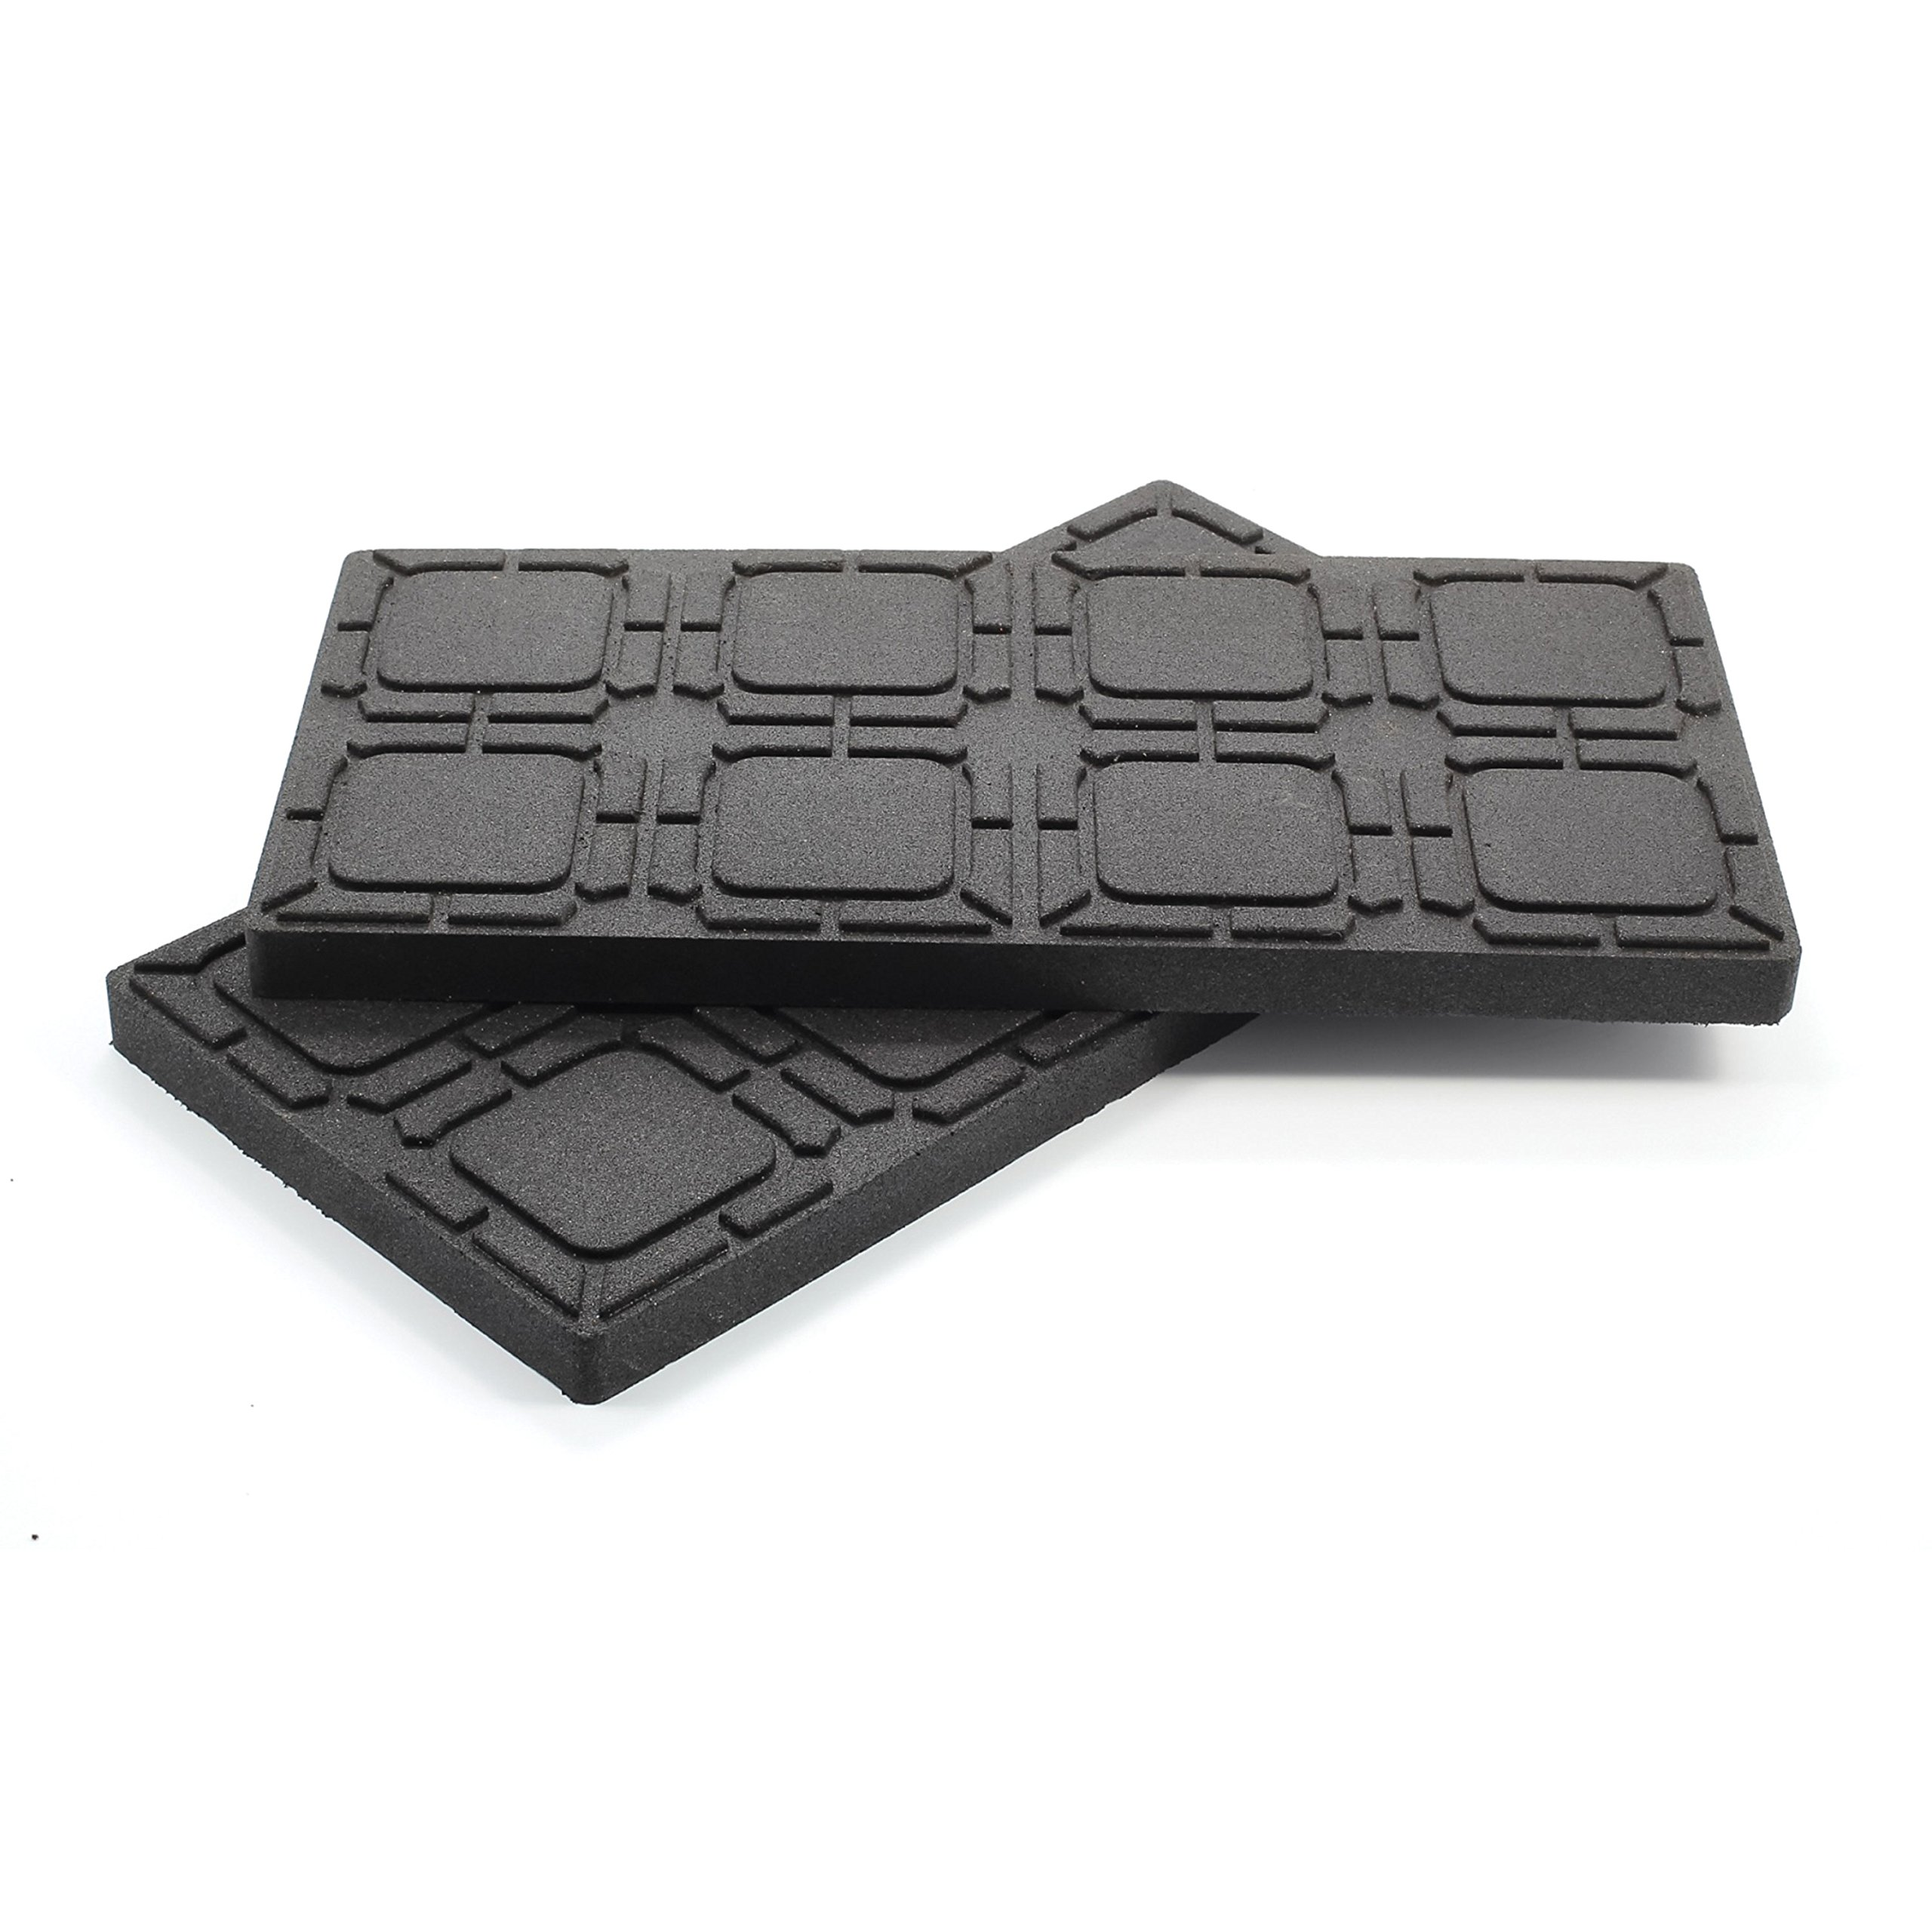 Camco 44601 Leveling Block Non-Slip Flex Pads-8 1/2'' x 17'' by Camco